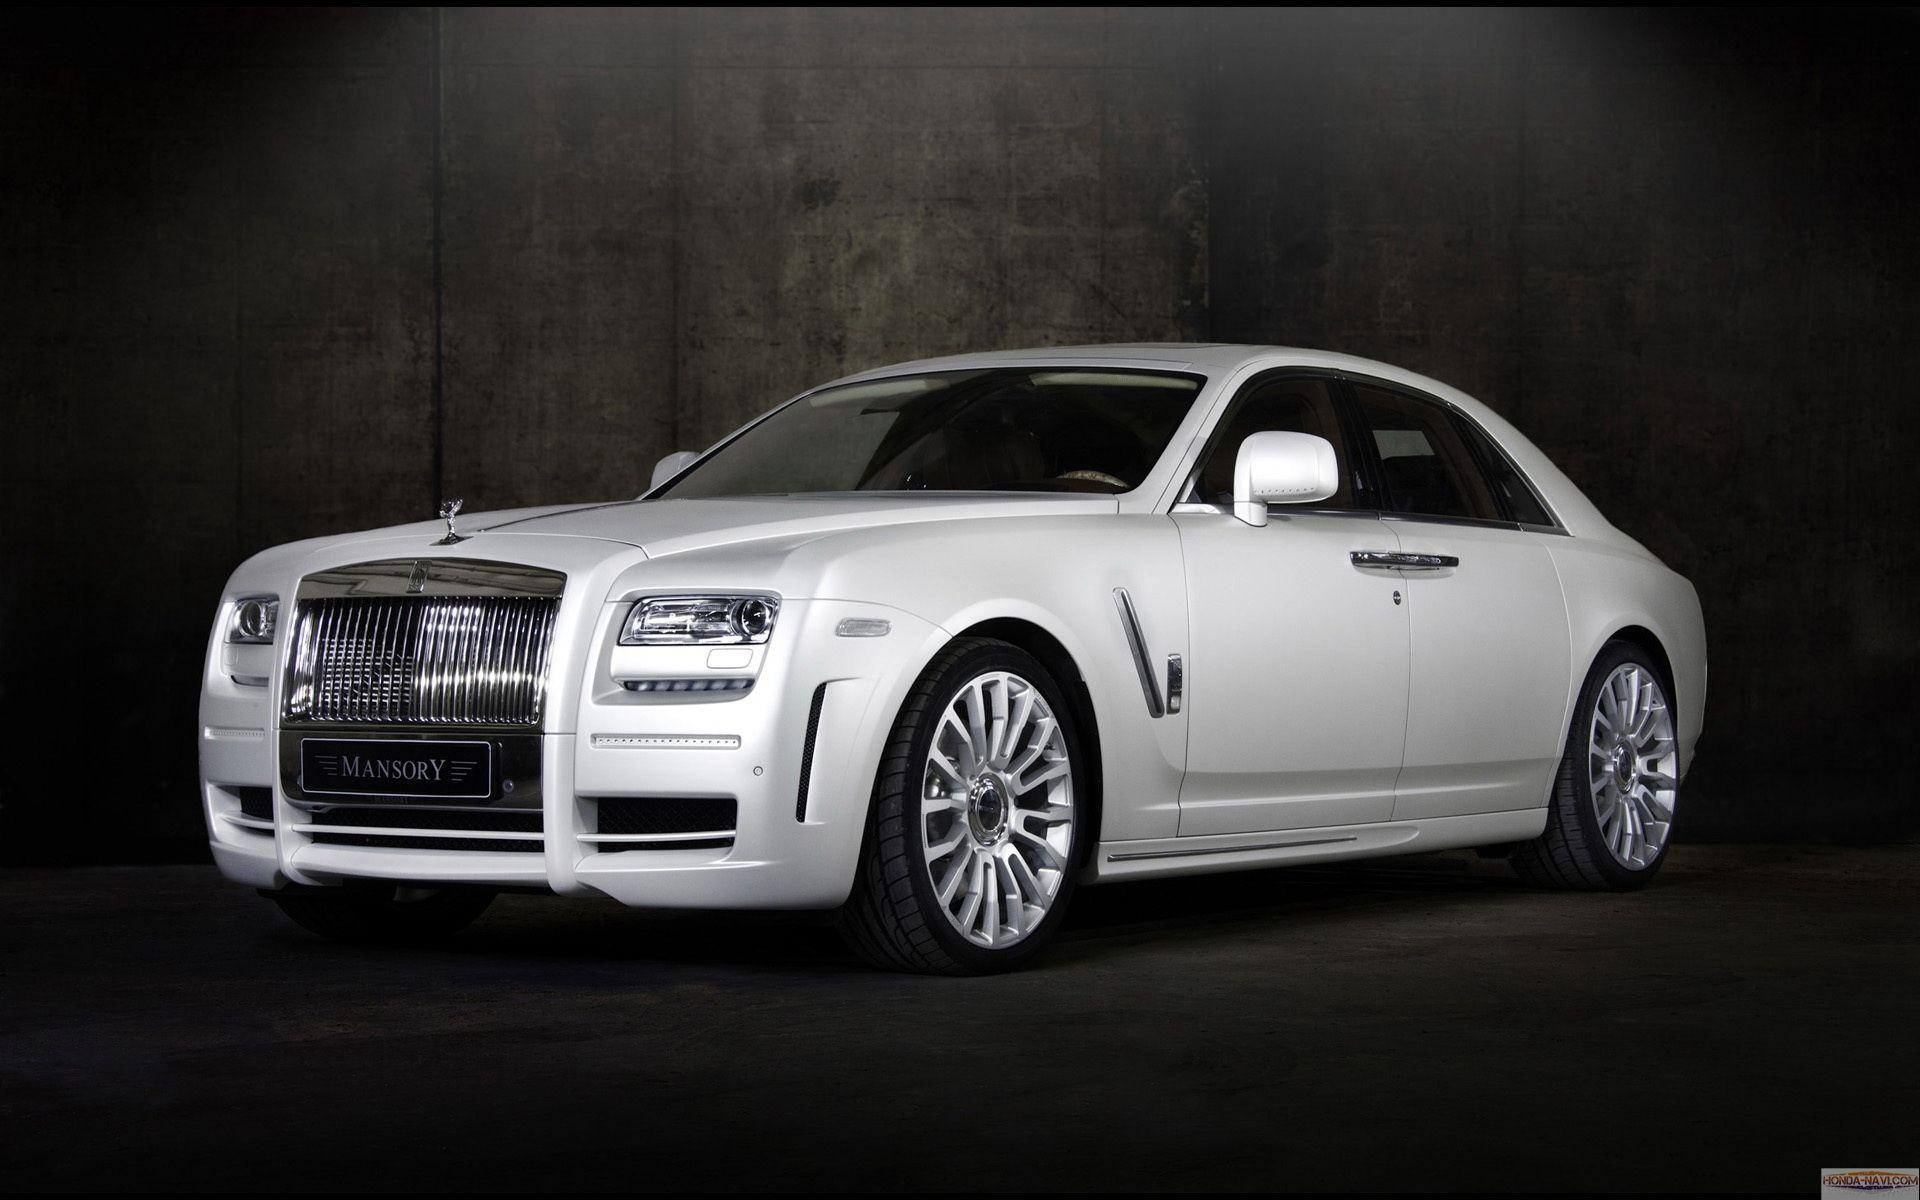 Rolls Royce Wallpapers Collection Desktop With Car Hd Image Quality